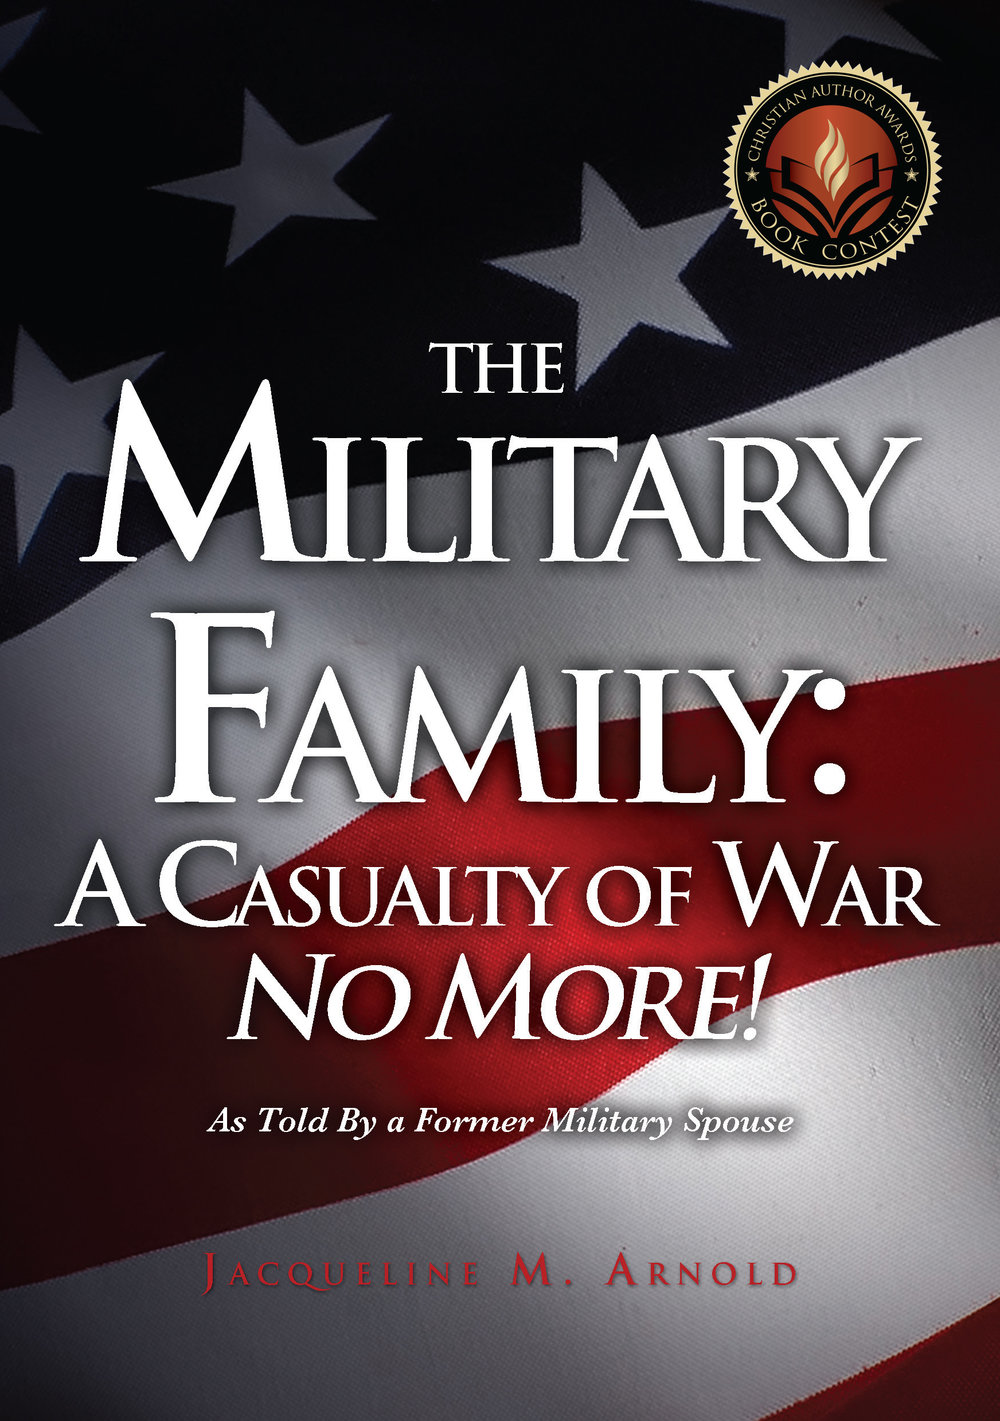 The Military Family No More! Cover with Award Seal.jpg